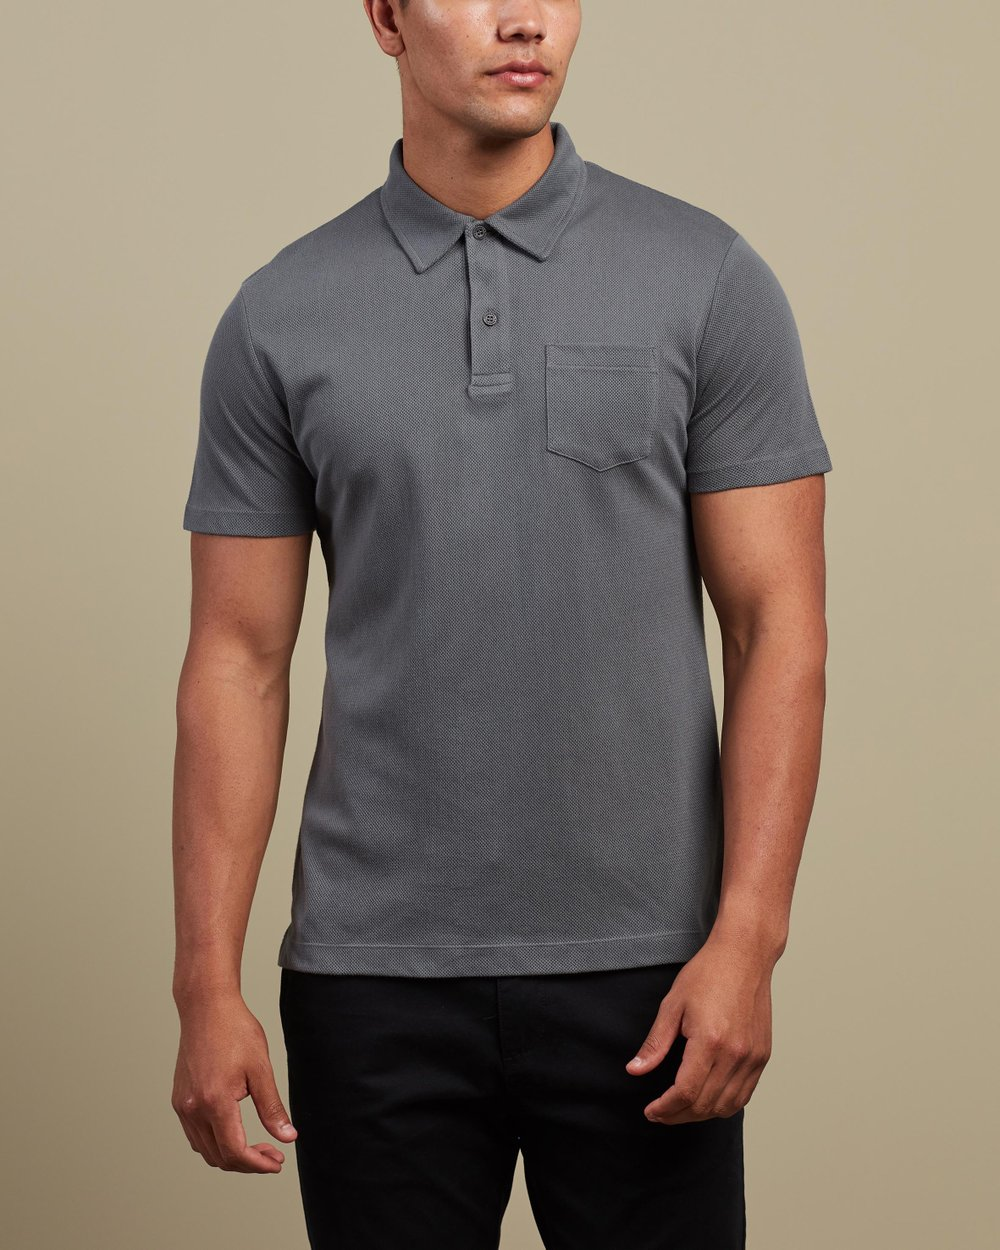 SUNSPEL RIVIERA SHORT SLEEVED COTTON POLO SHIRT IN BLACK ALL SIZES RRP £85